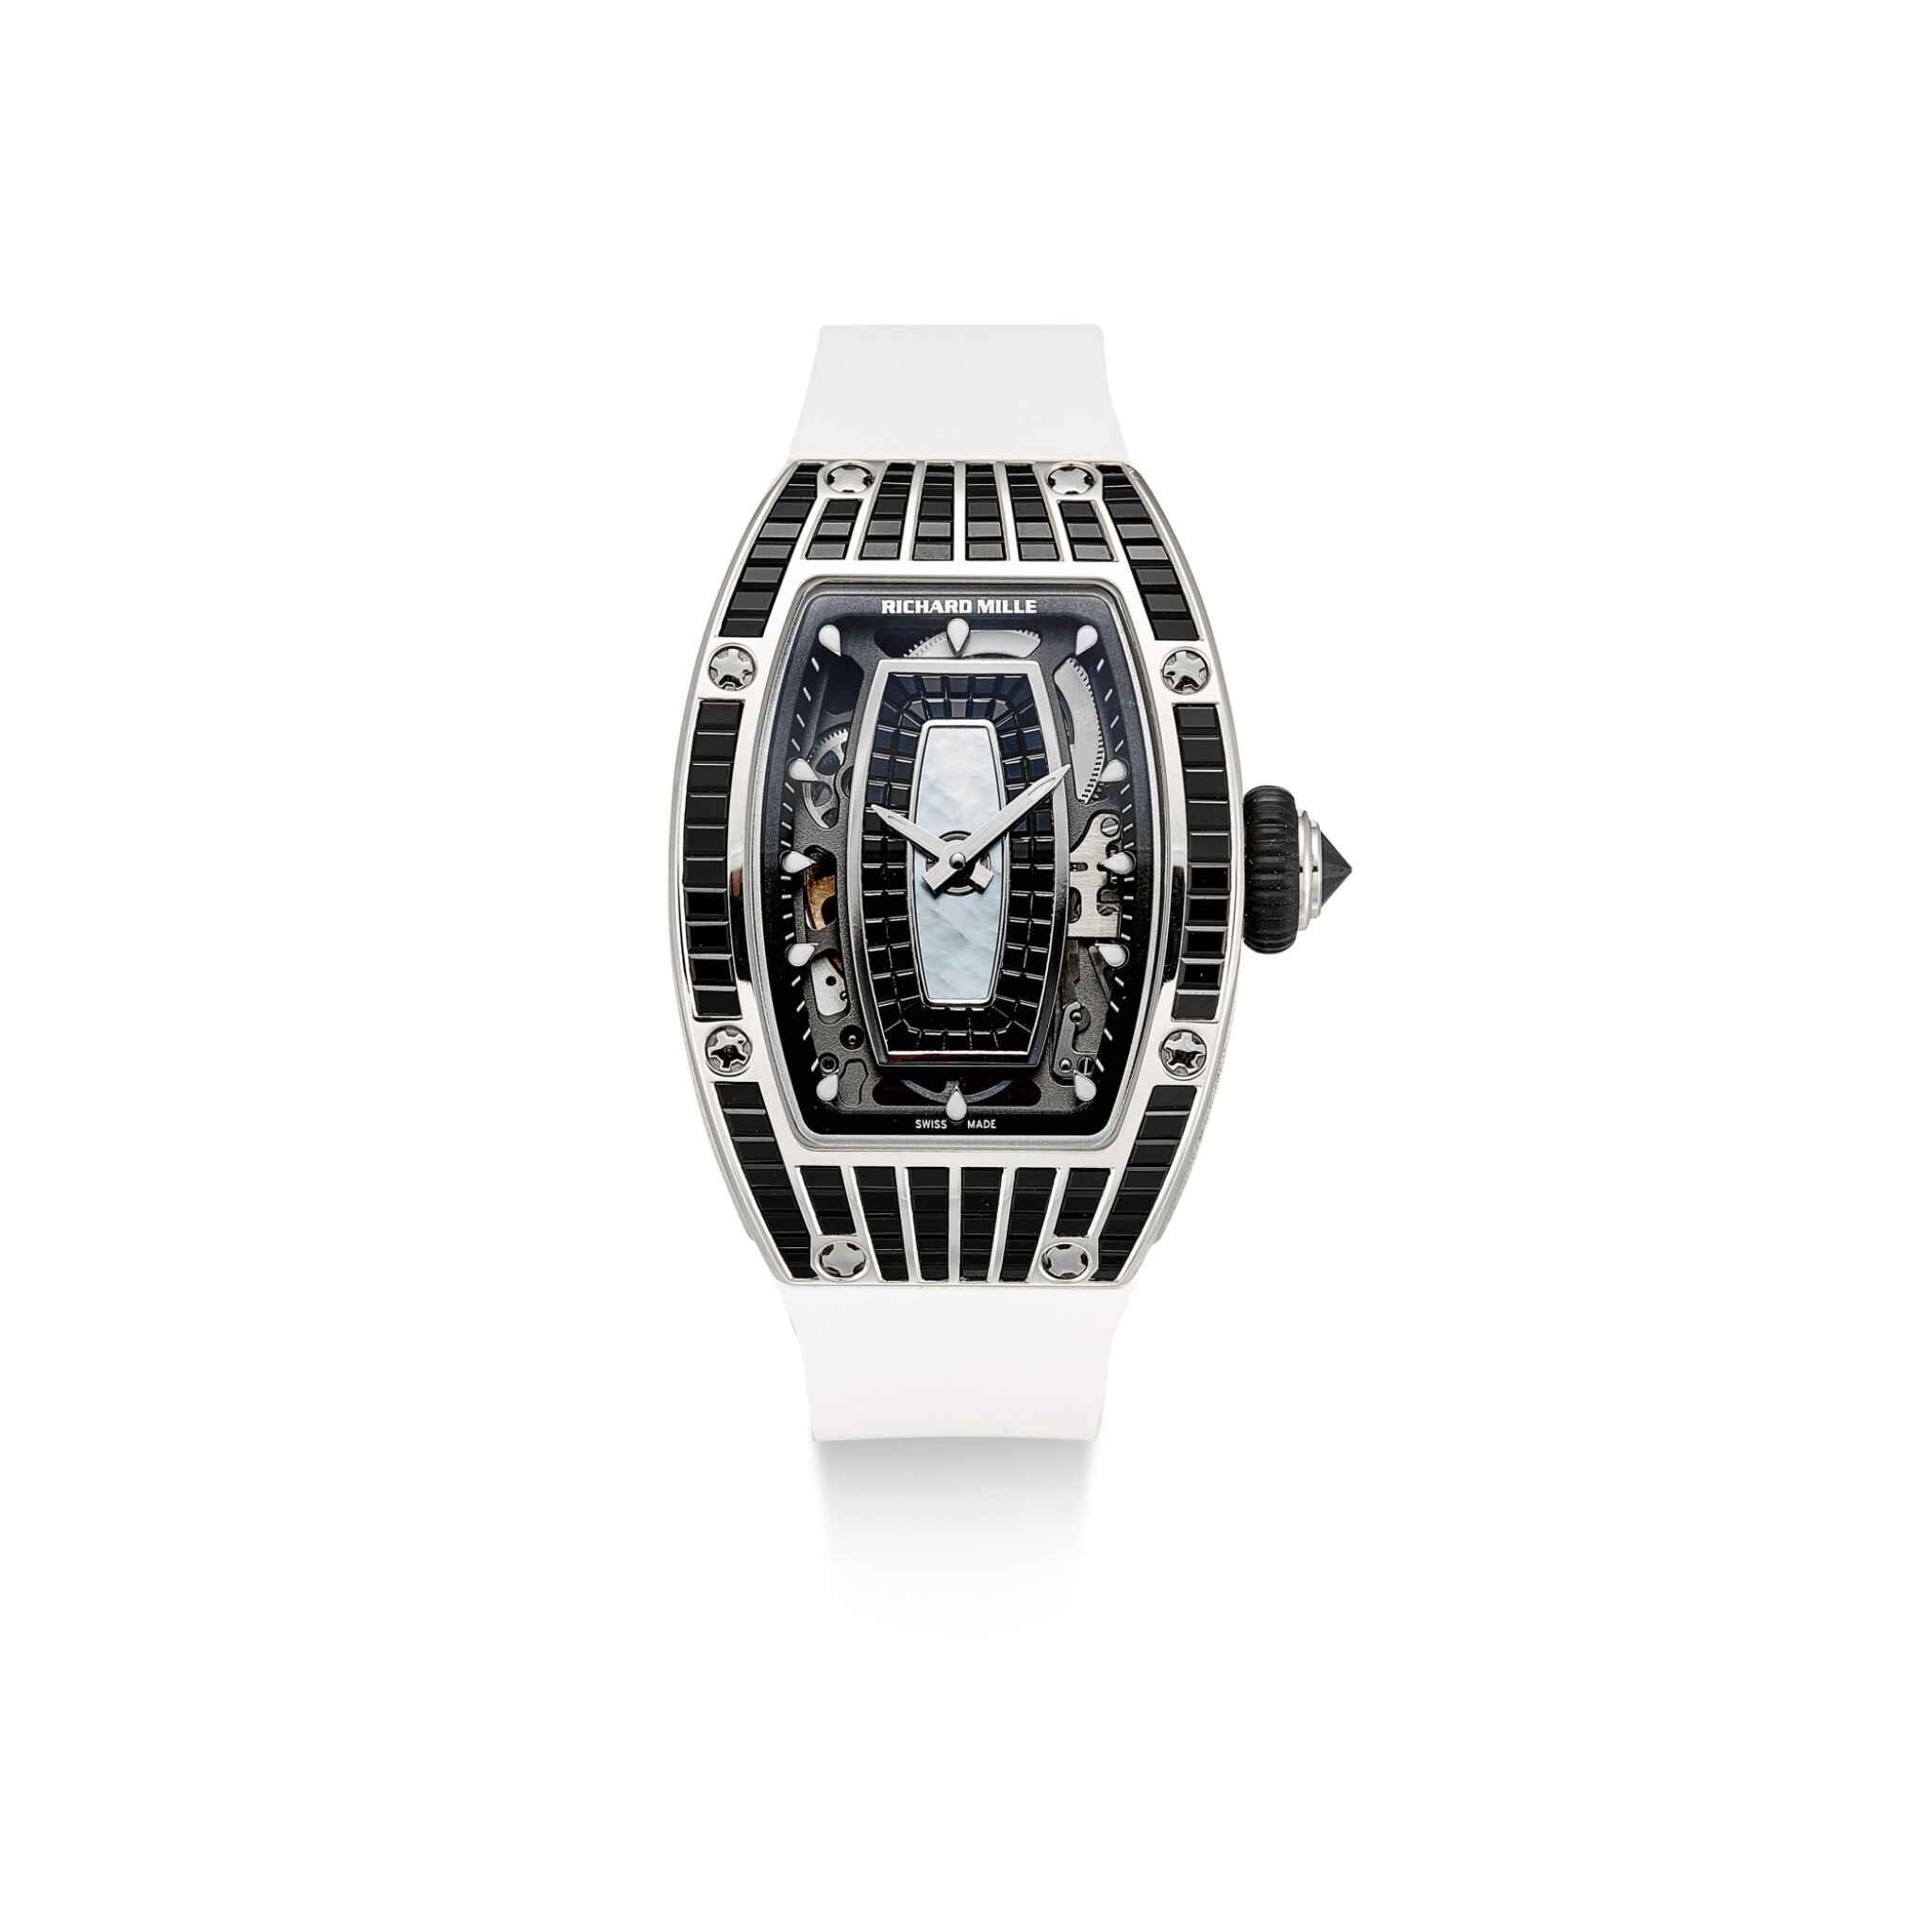 View full screen - View 1 of Lot 351. RICHARD MILLE   RM07, A BRAND NEW WHITE GOLD, DIAMOND AND BLACK BAGUETTE-CUT SAPPHIRE-SET SEMI-SKELETONISED WRISTWATCH WITH MOTHER-OF-PEARL DIAL, CIRCA 2019.